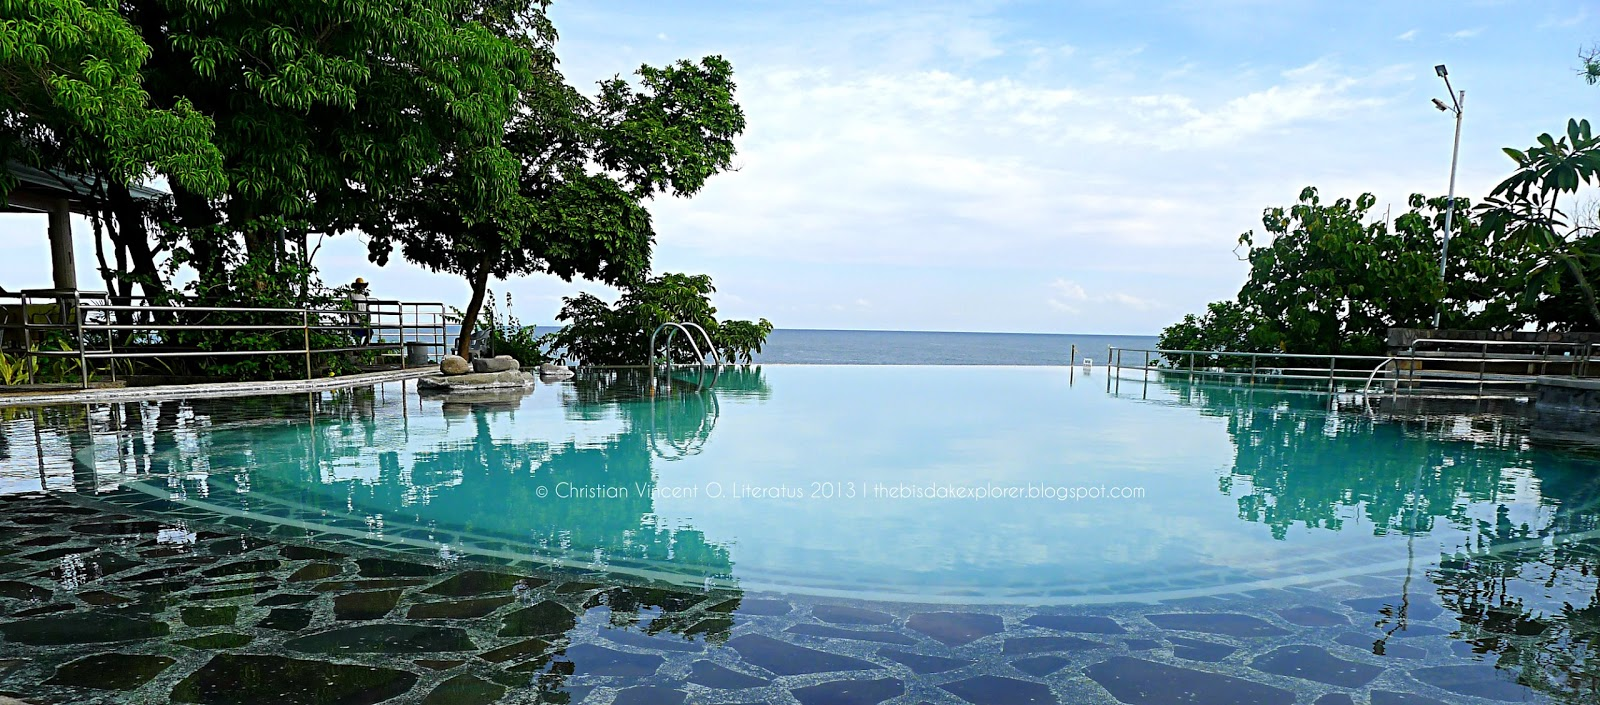 The Captivating Infinity Pool